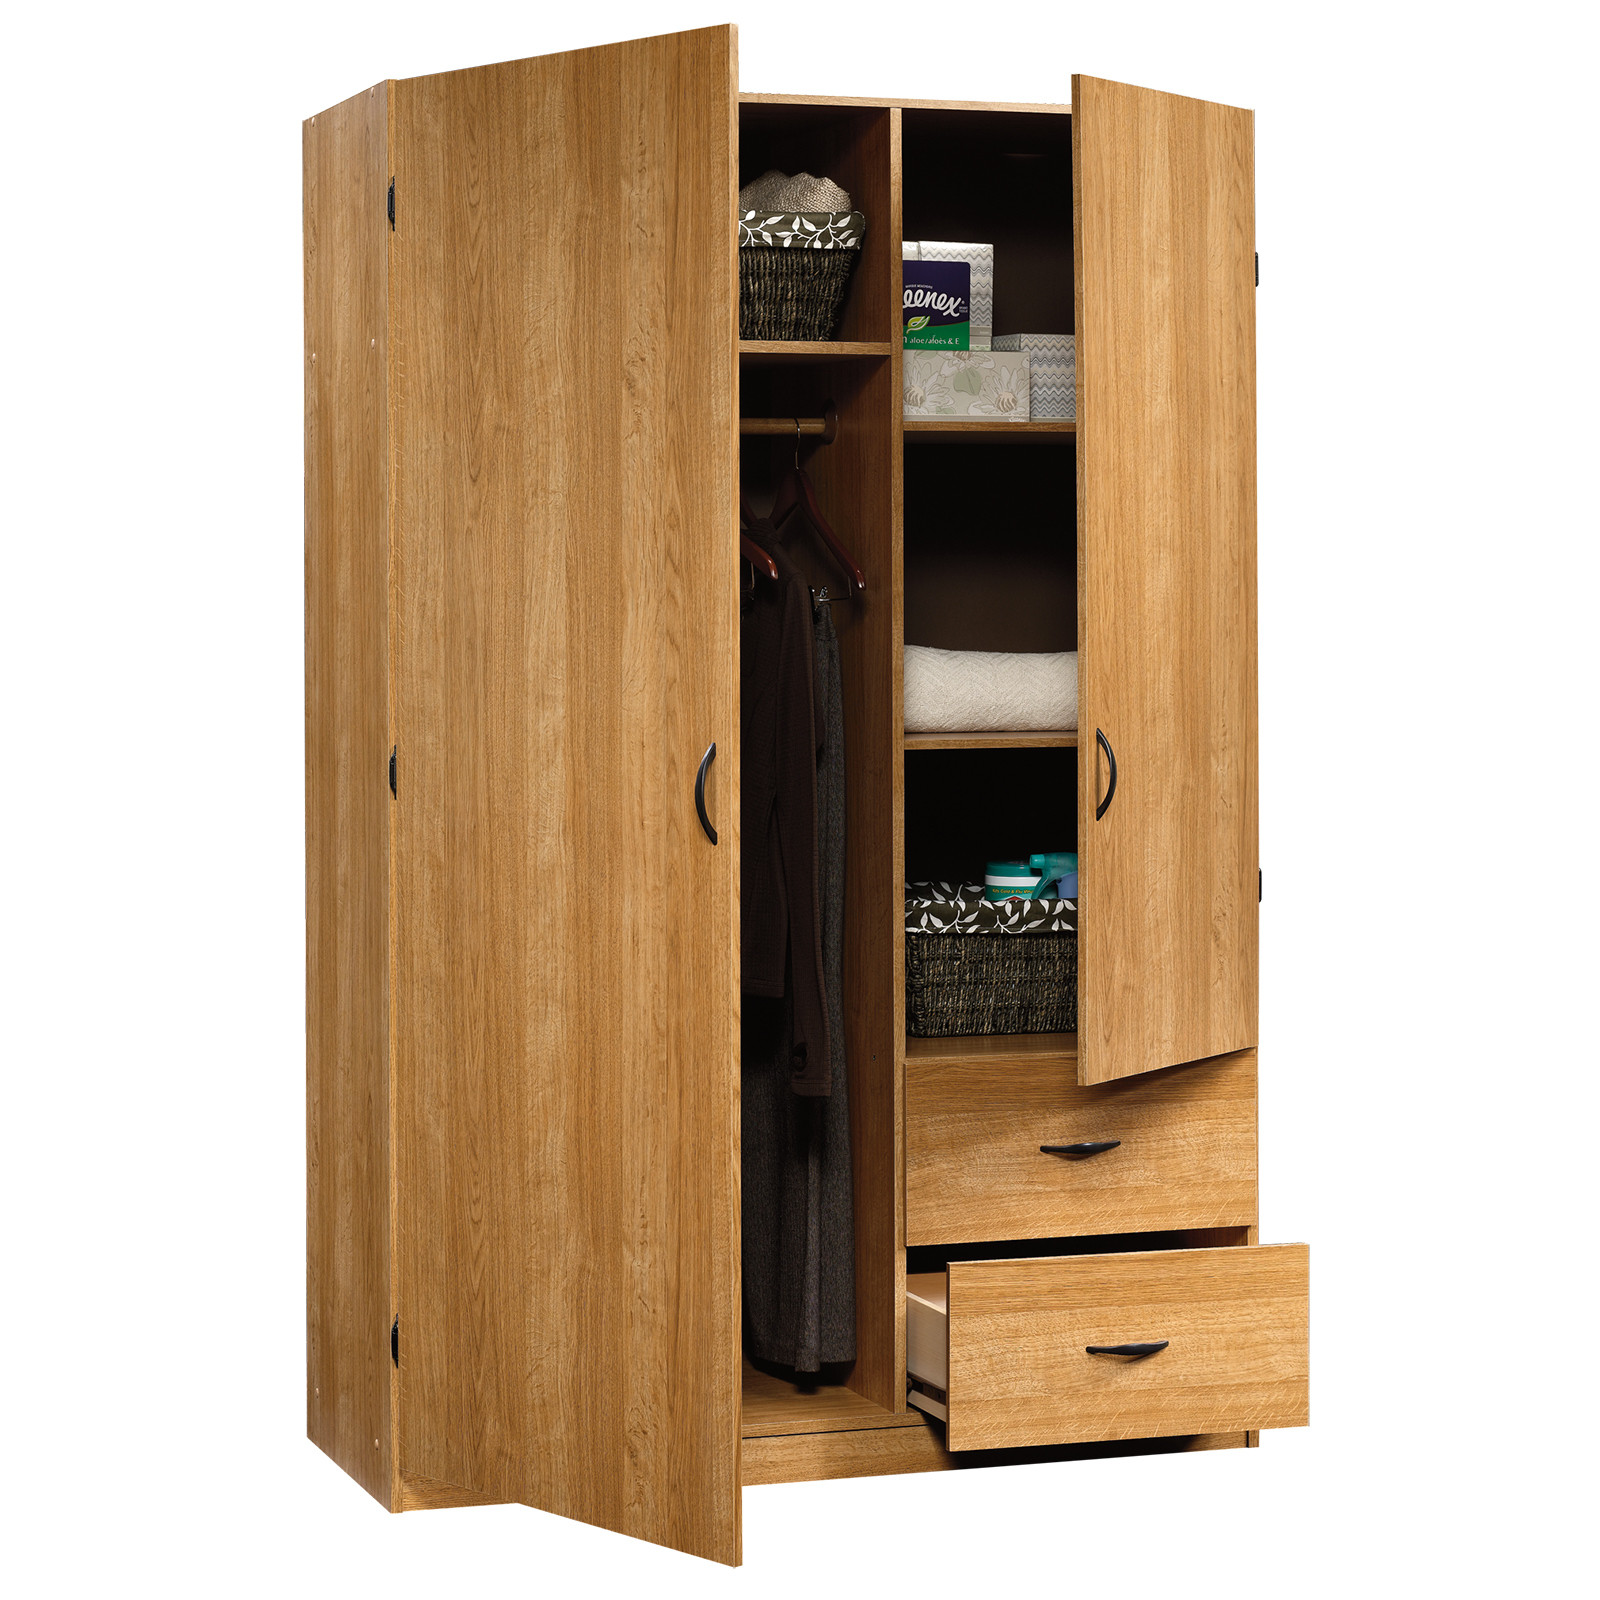 Best ideas about Bedroom Storage Cabinets . Save or Pin 52 Ikea Storage Cabinets Bedroom IKEA Bedroom Storage Now.